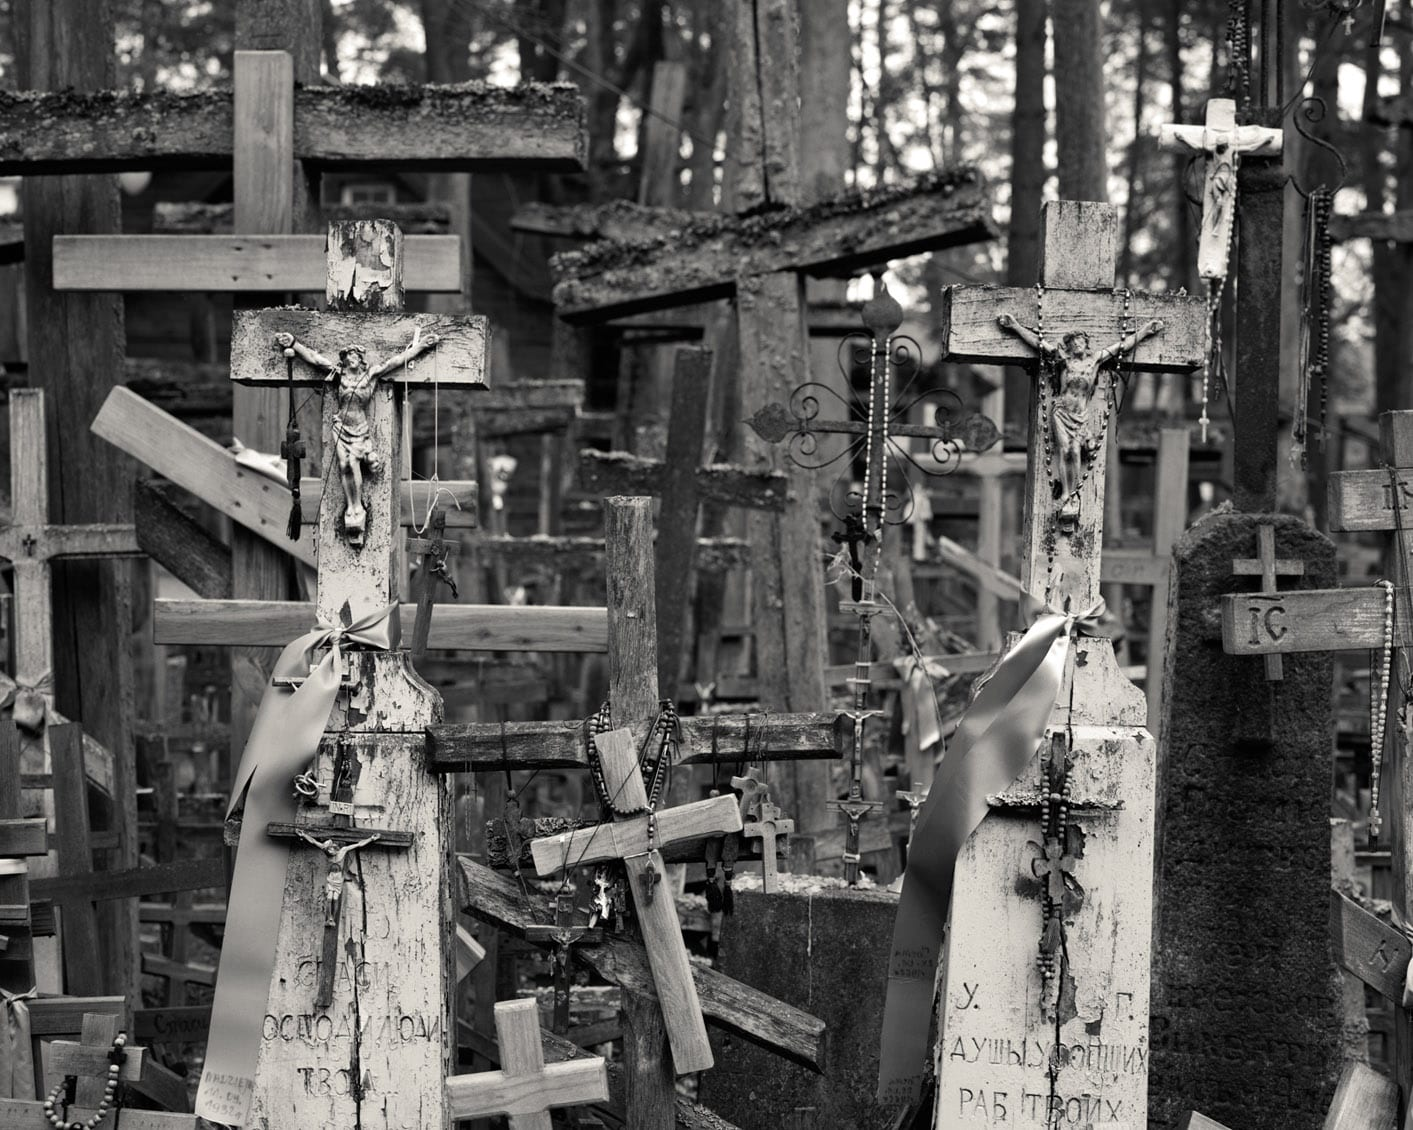 Untitled 36-Ex Voto-Alys Tomlinson-black and white photography- group of crosses